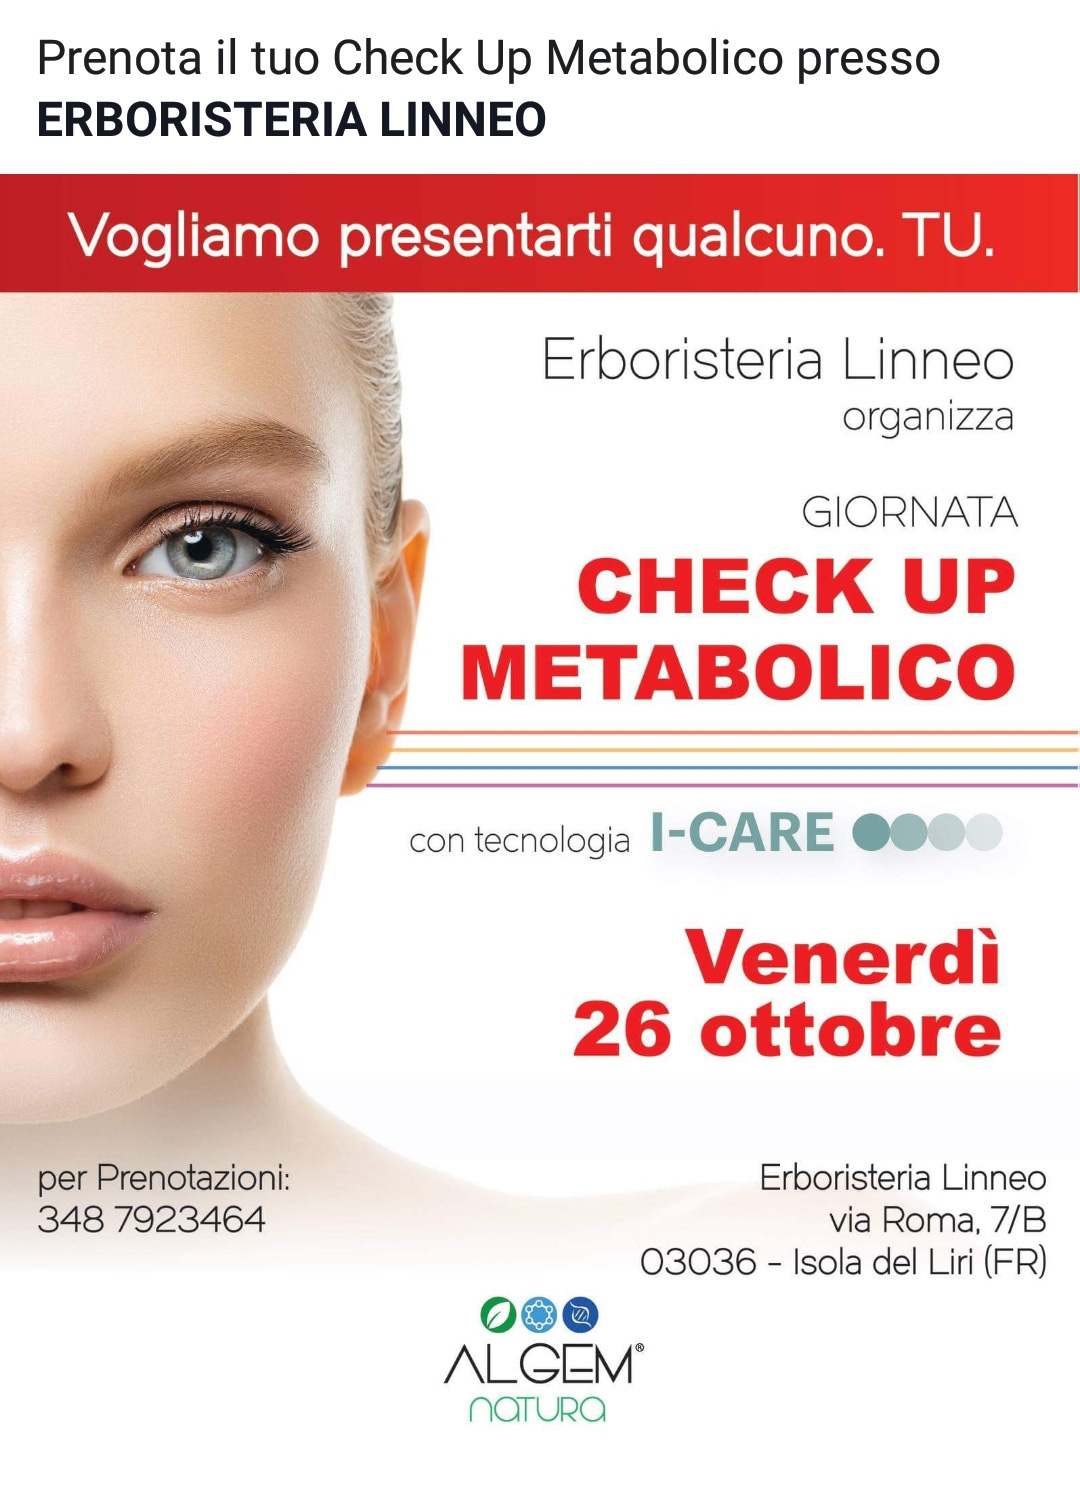 Giornata Check Up Metabolico